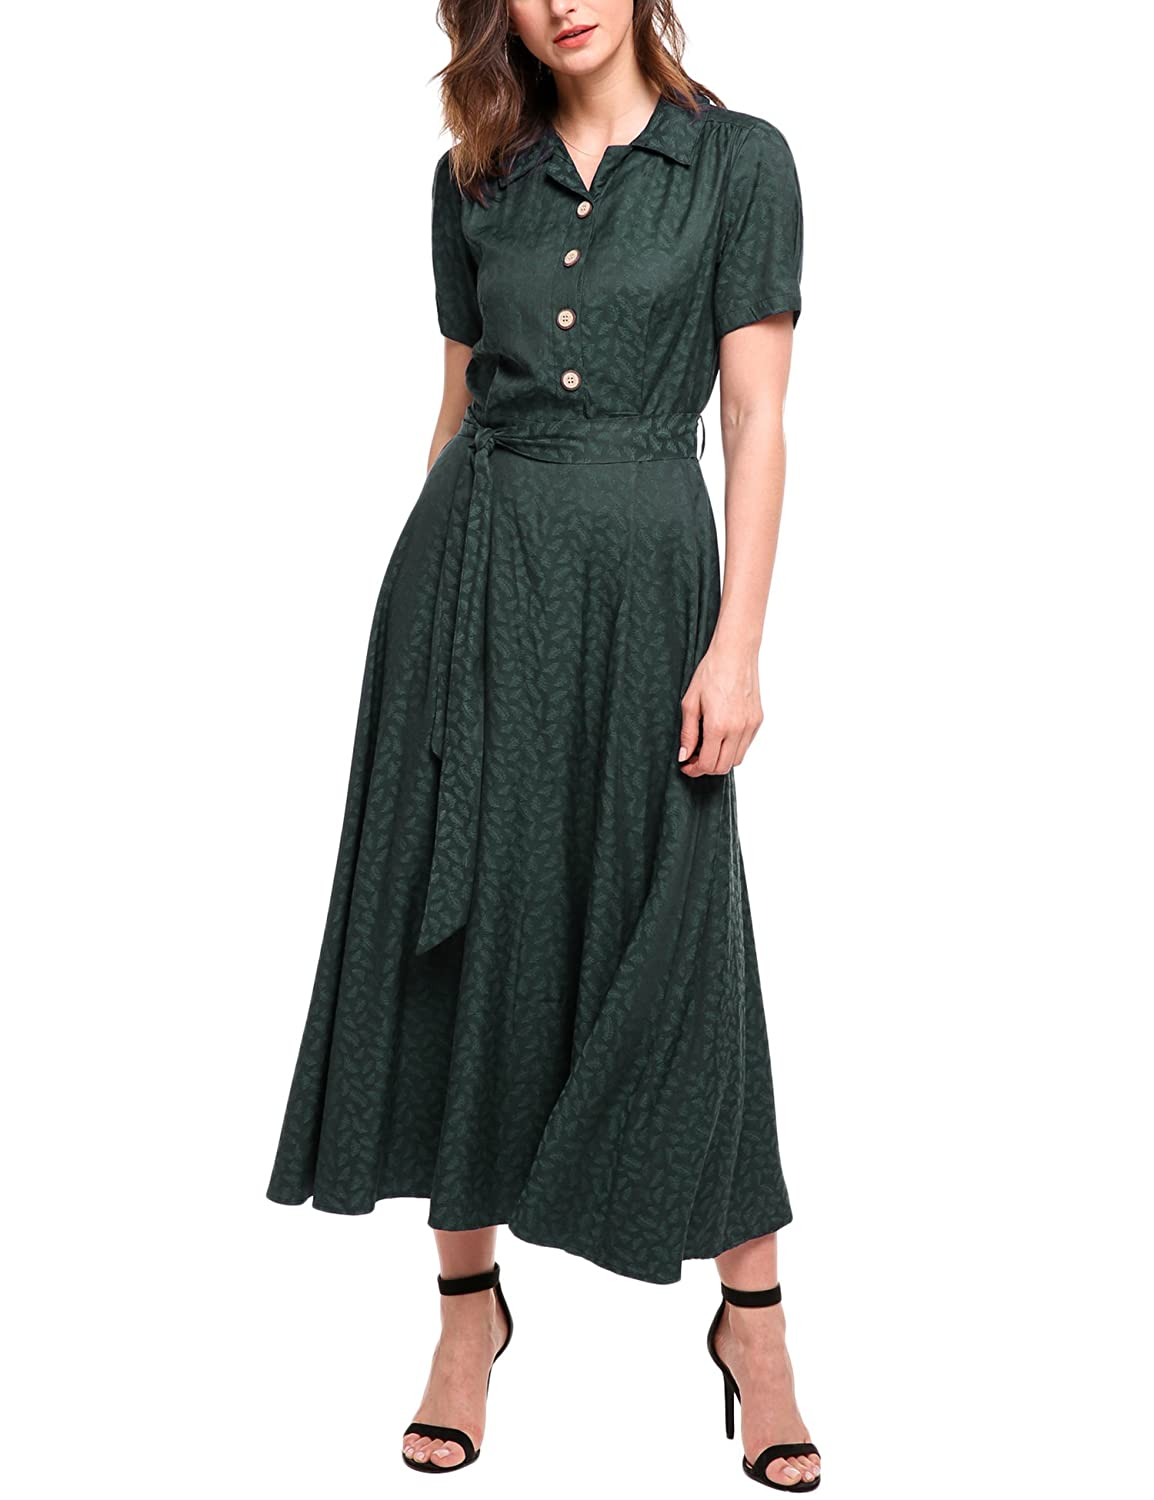 Swing Dance Clothing You Can Dance In ACEVOG Women Vintage Style Turn Down Collar Short Sleeve High Waist Maxi Swing Dress with Belt $38.99 AT vintagedancer.com